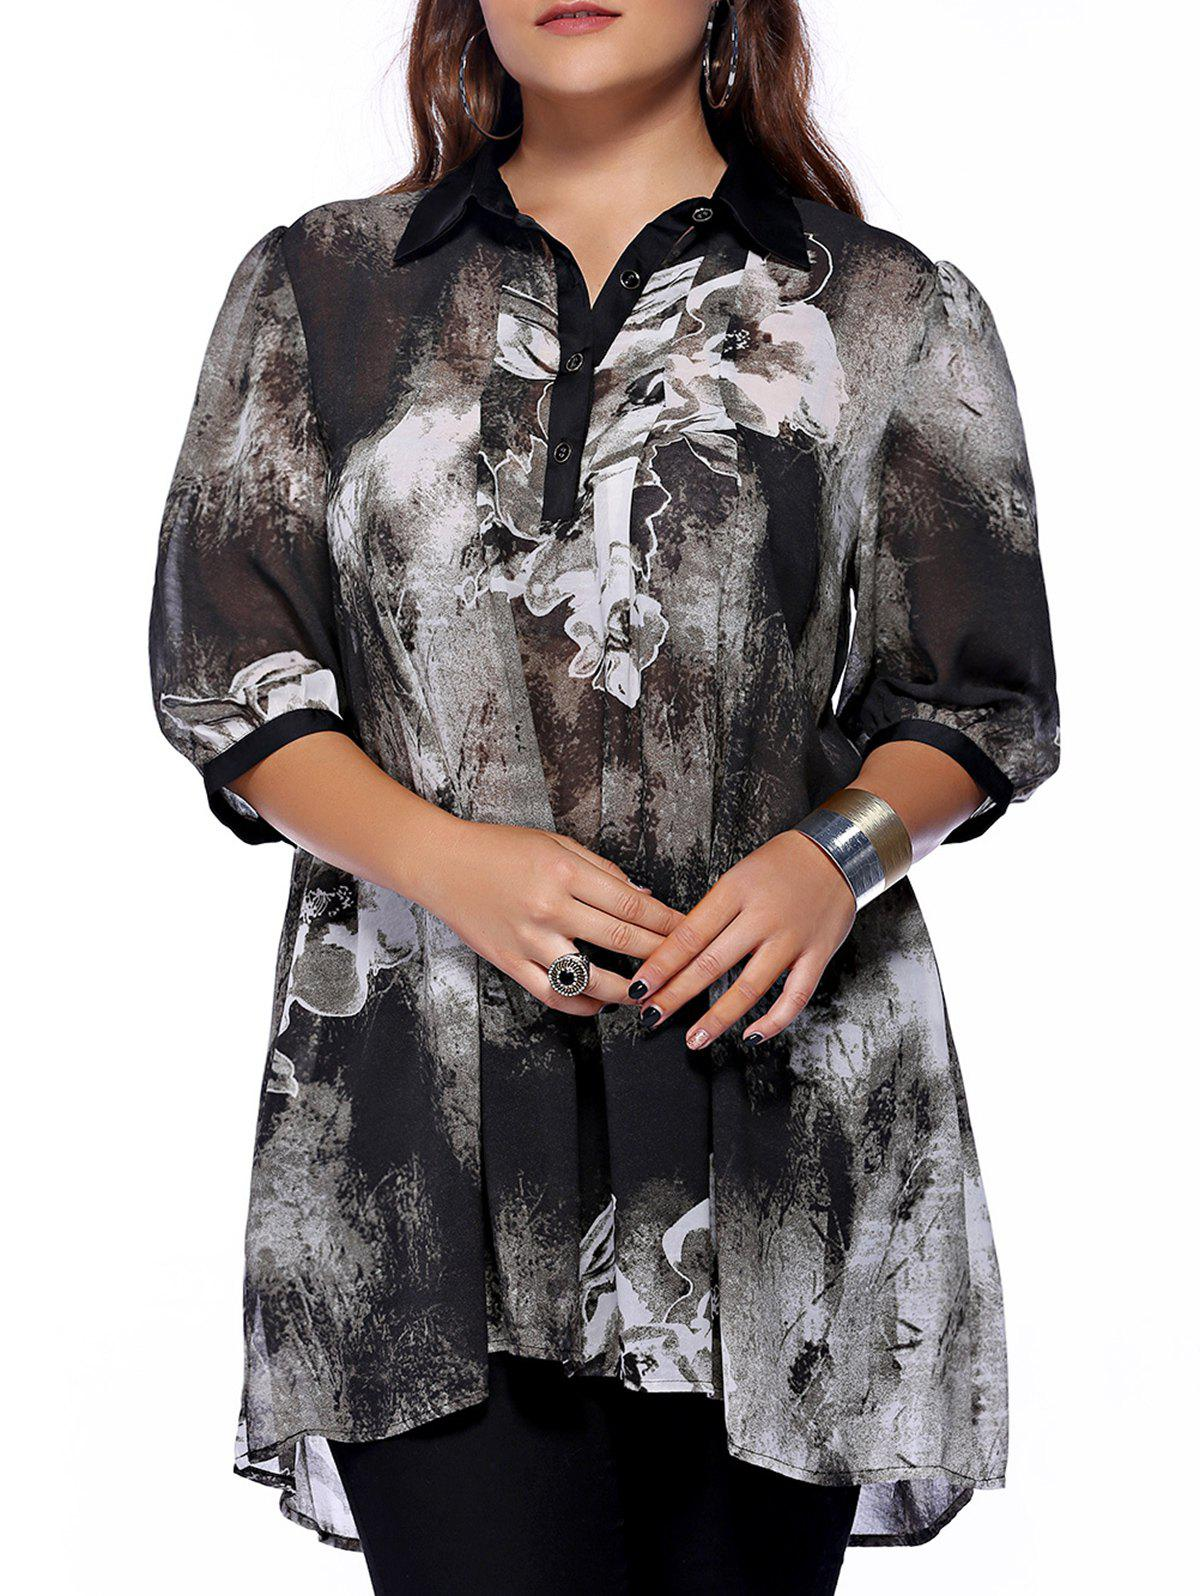 Plus Size Brief Ink Painting Buttoned BlouseWOMEN<br><br>Size: XL; Color: BLACK; Material: Polyester; Shirt Length: Long; Sleeve Length: Half; Collar: Shirt Collar; Style: Fashion; Season: Spring,Summer; Embellishment: Button; Pattern Type: Floral; Weight: 0.2100kg; Package Contents: 1 x Blouse;